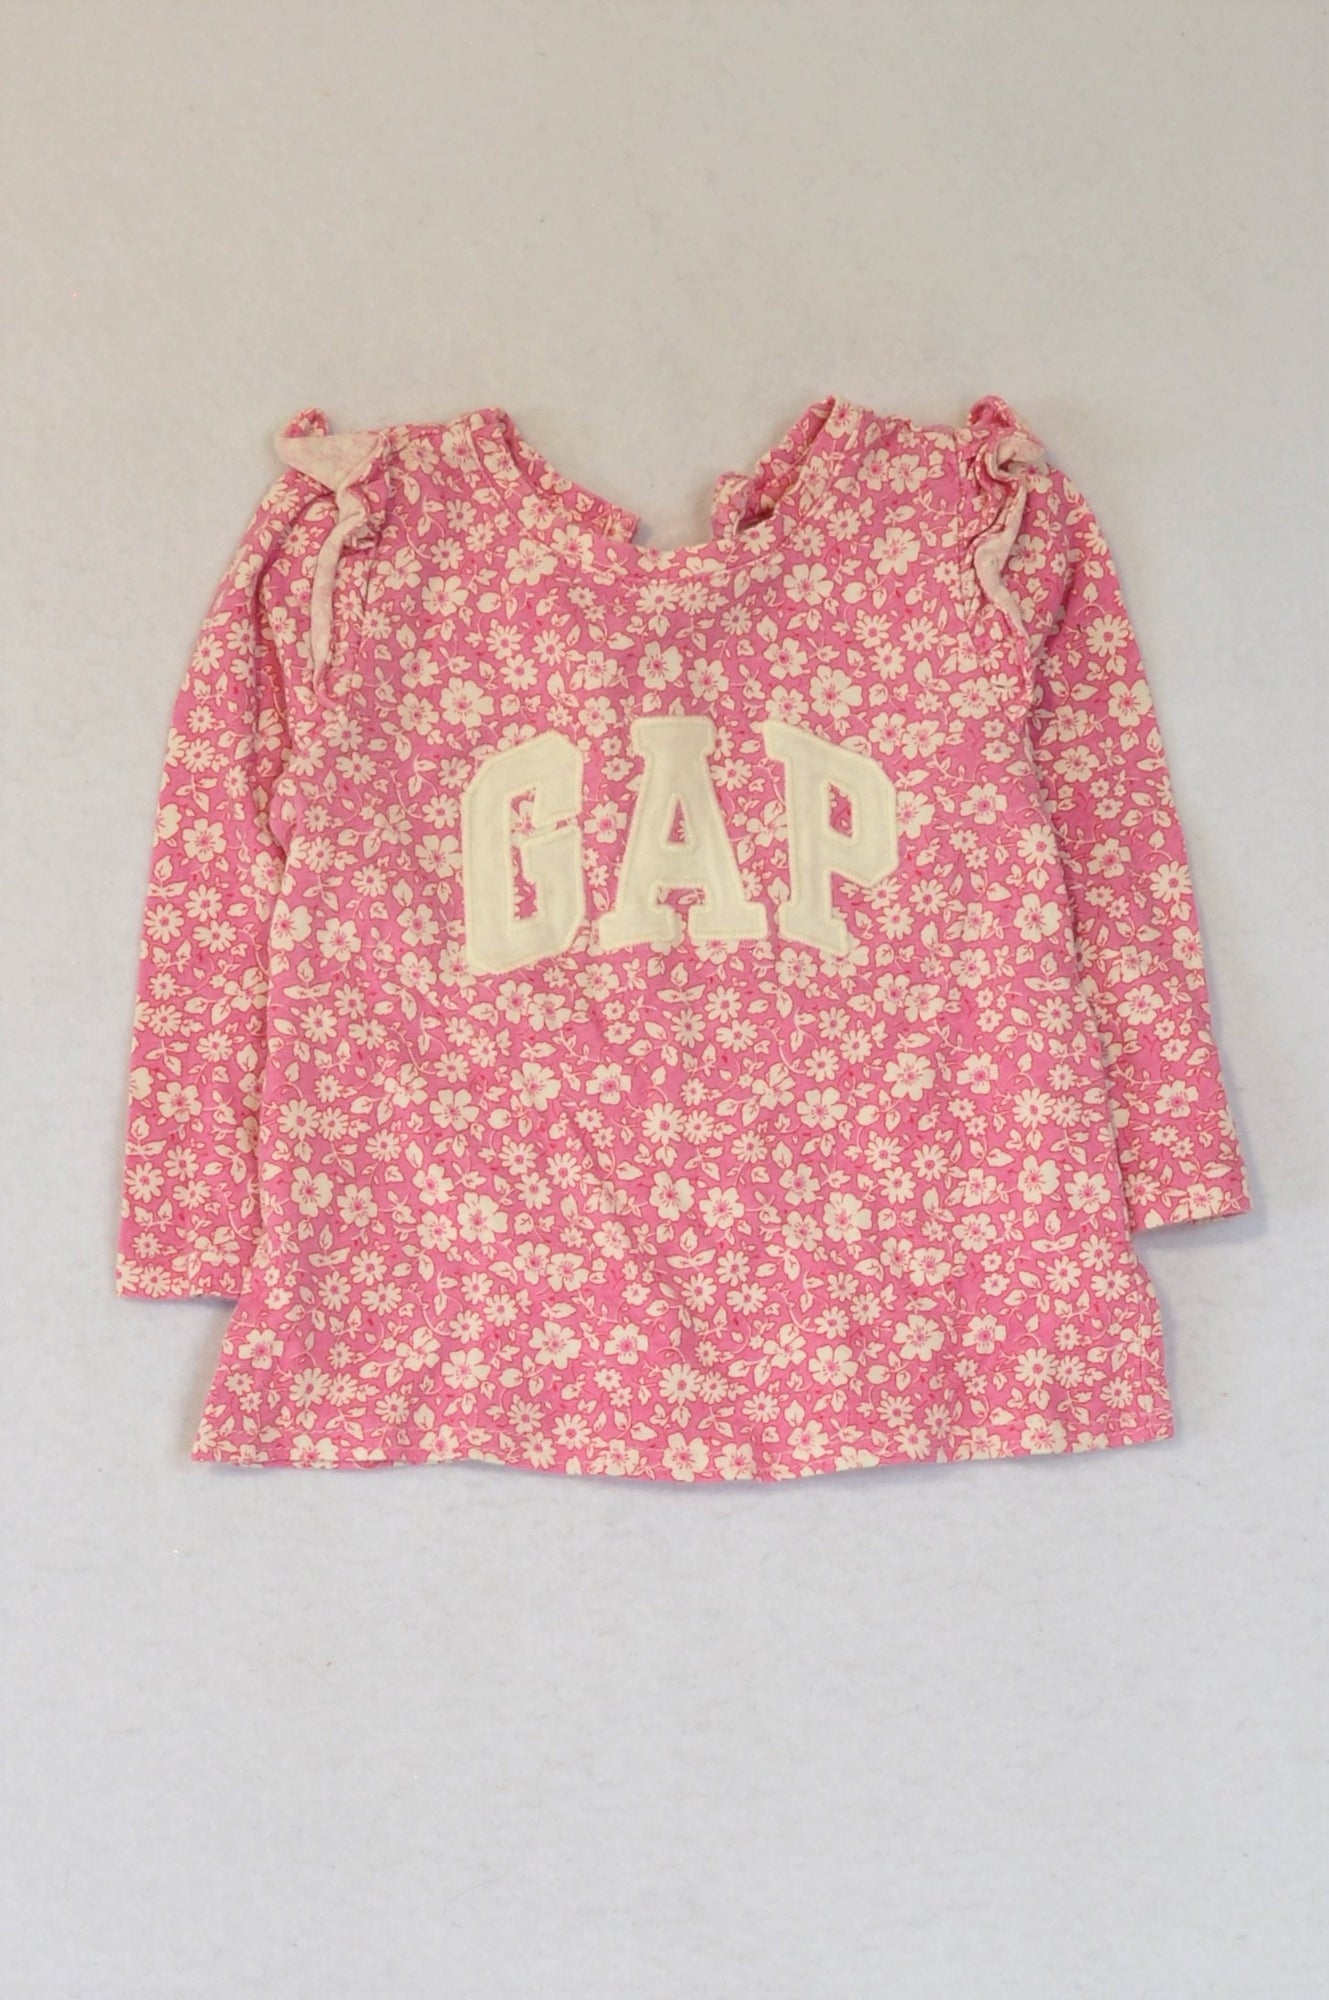 GAP Pink Floral Long Sleeve Top Girls 18-24 months